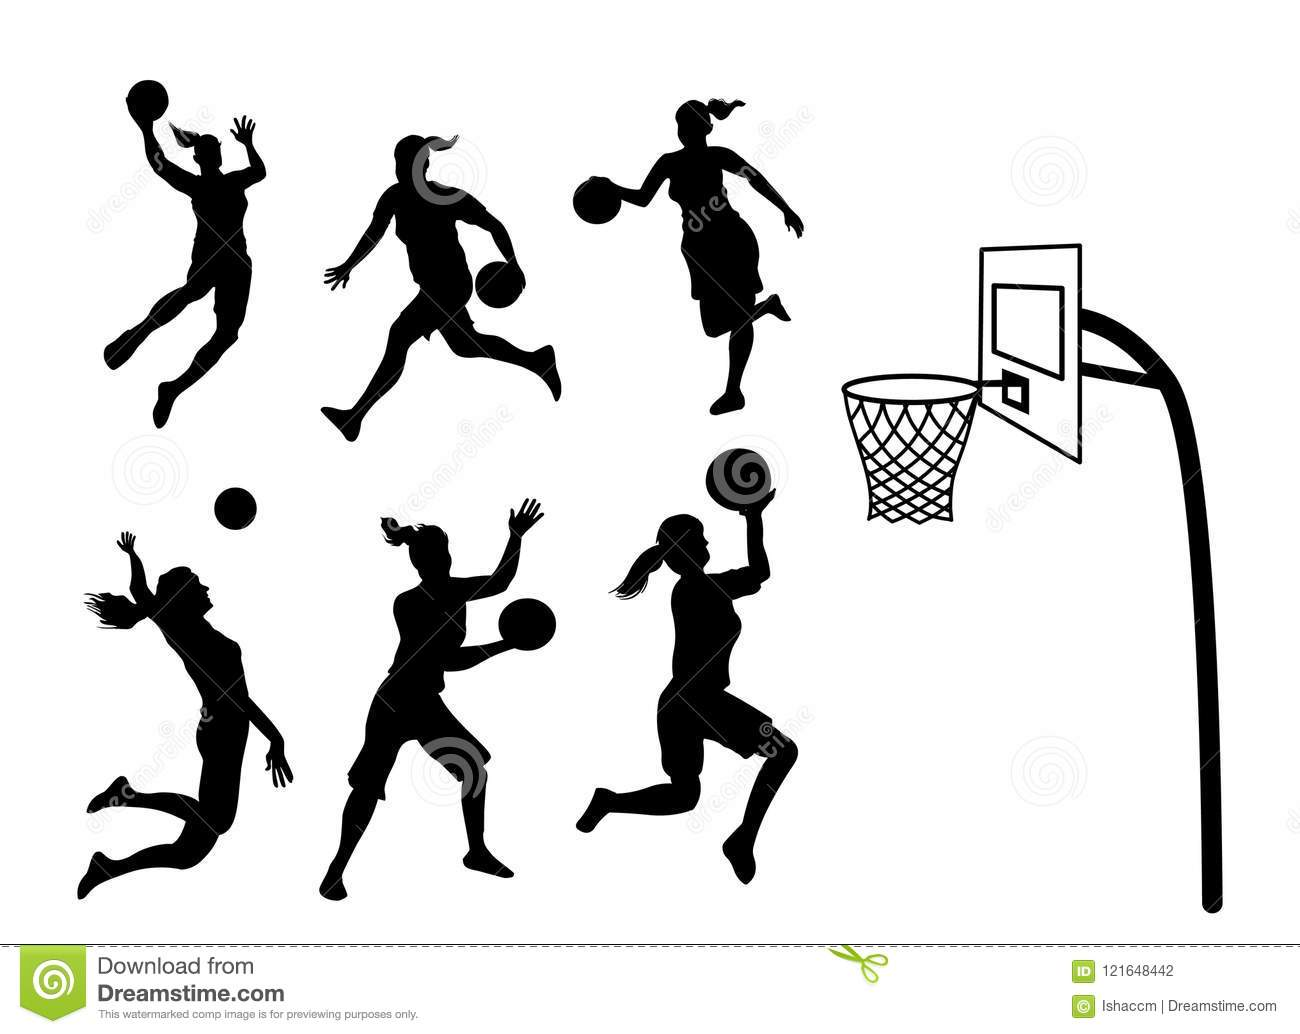 Basketball Player Silhouette Stock Illustrations 3 156 Basketball Player Silhouette Stock